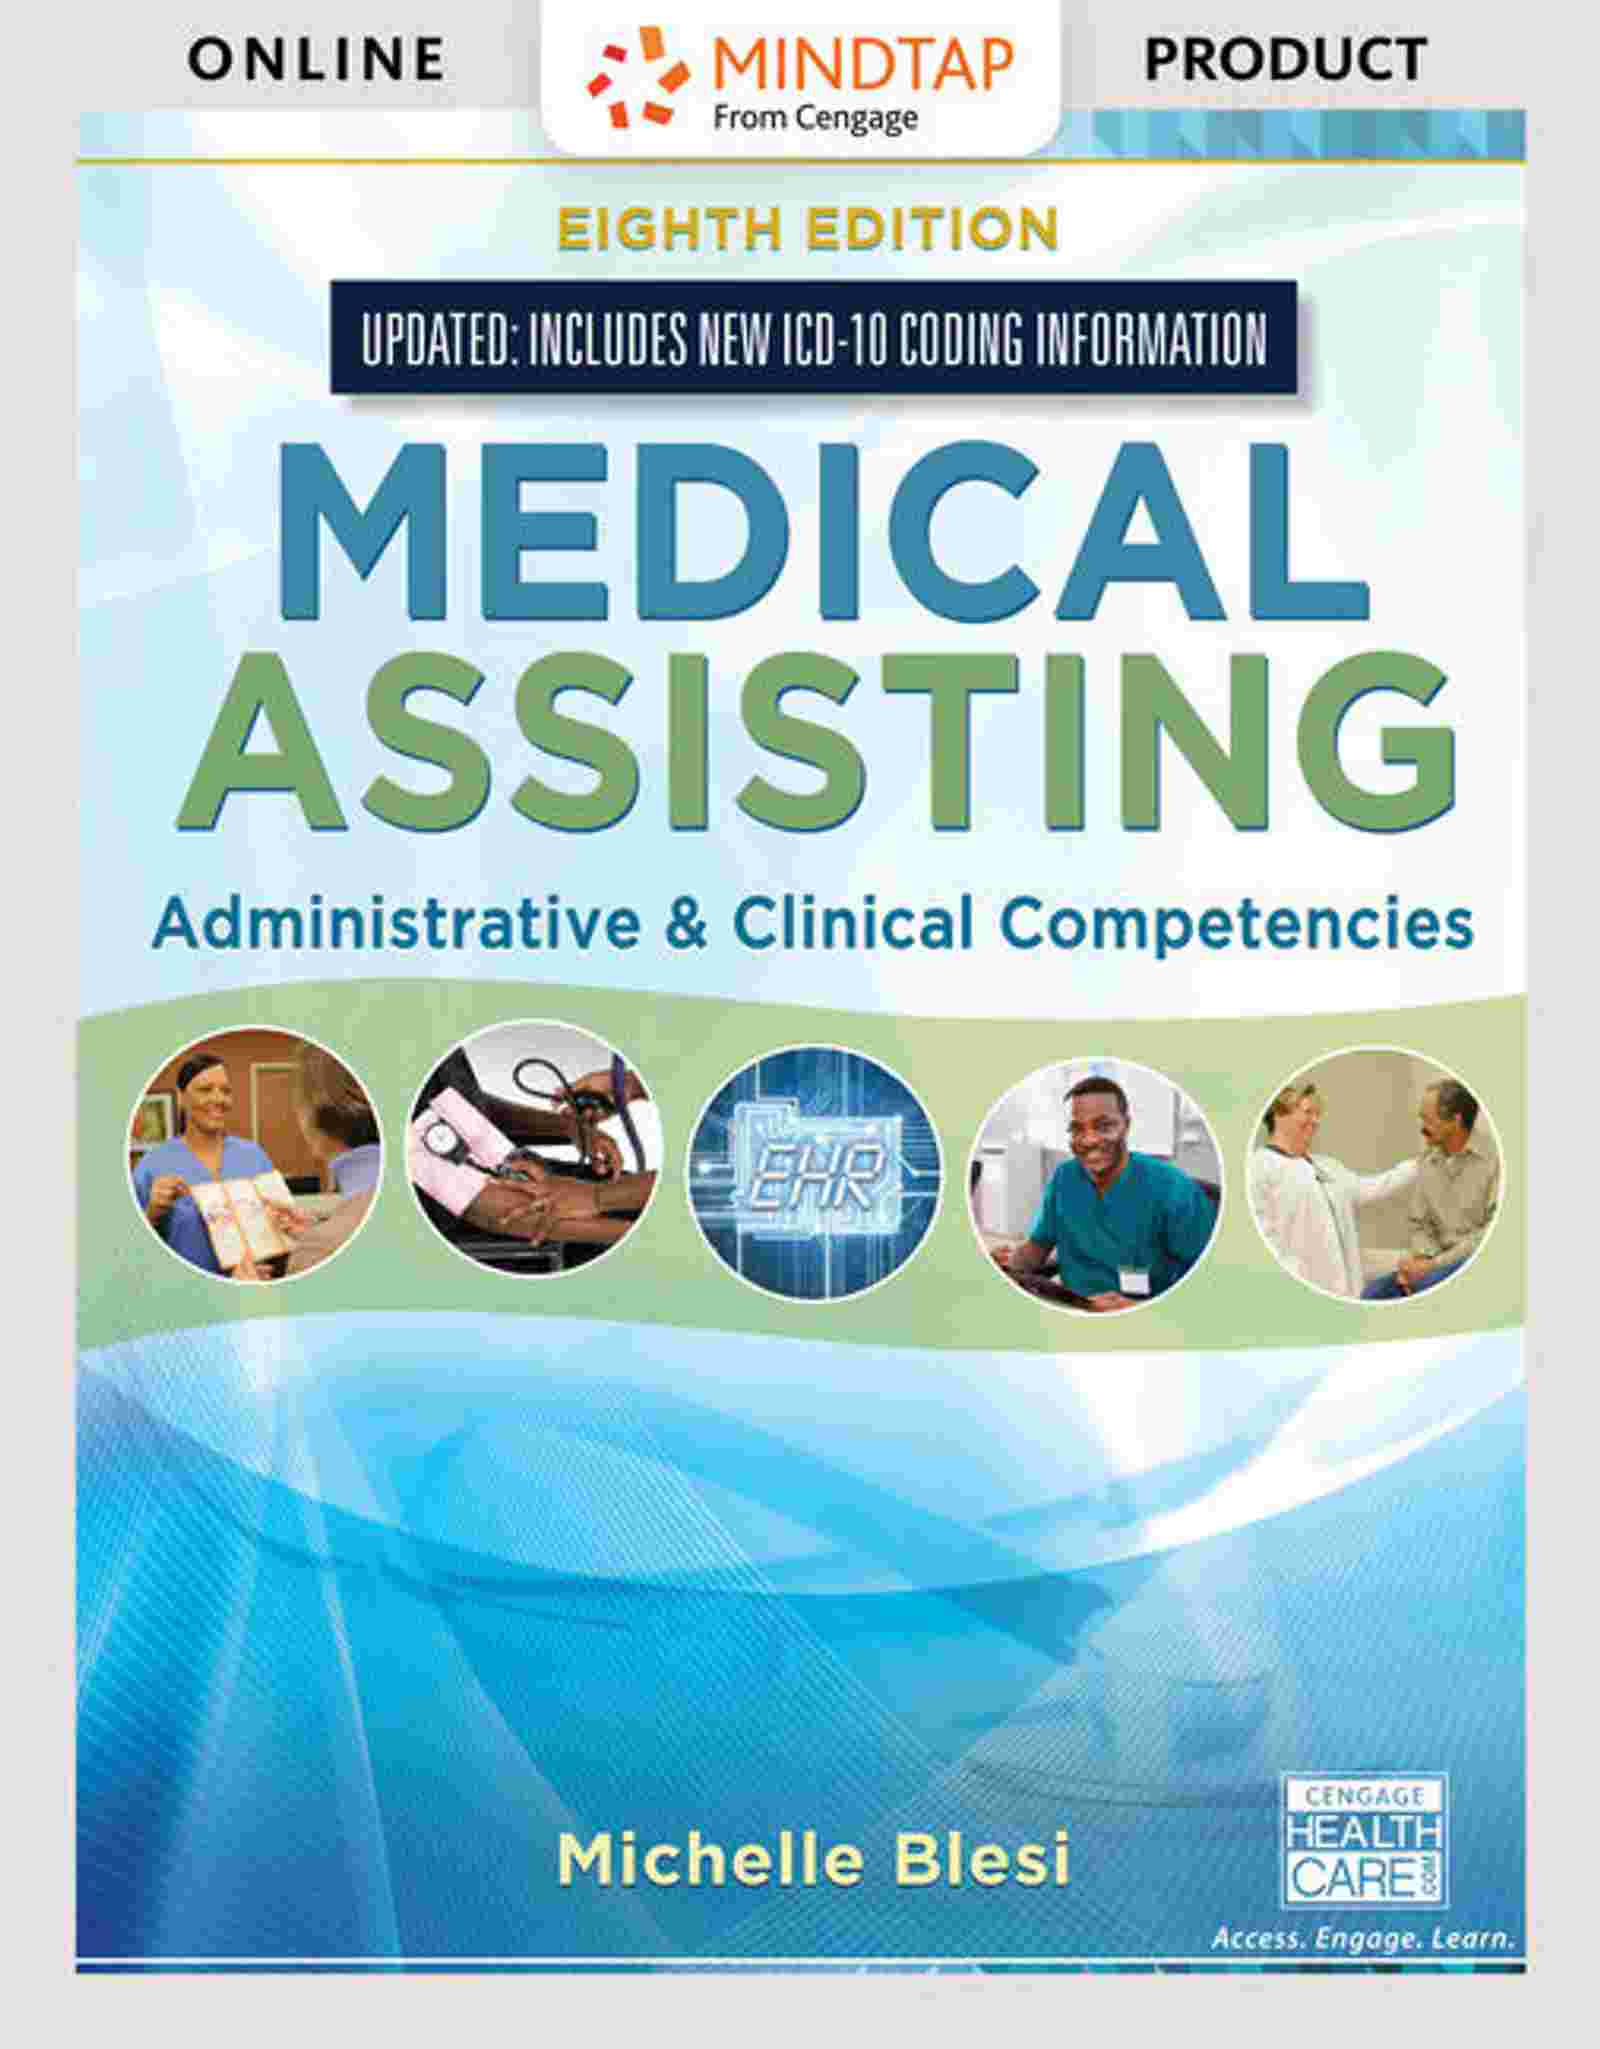 Medical Assisting: Administrative and Clinical Competencies, 8th Edition